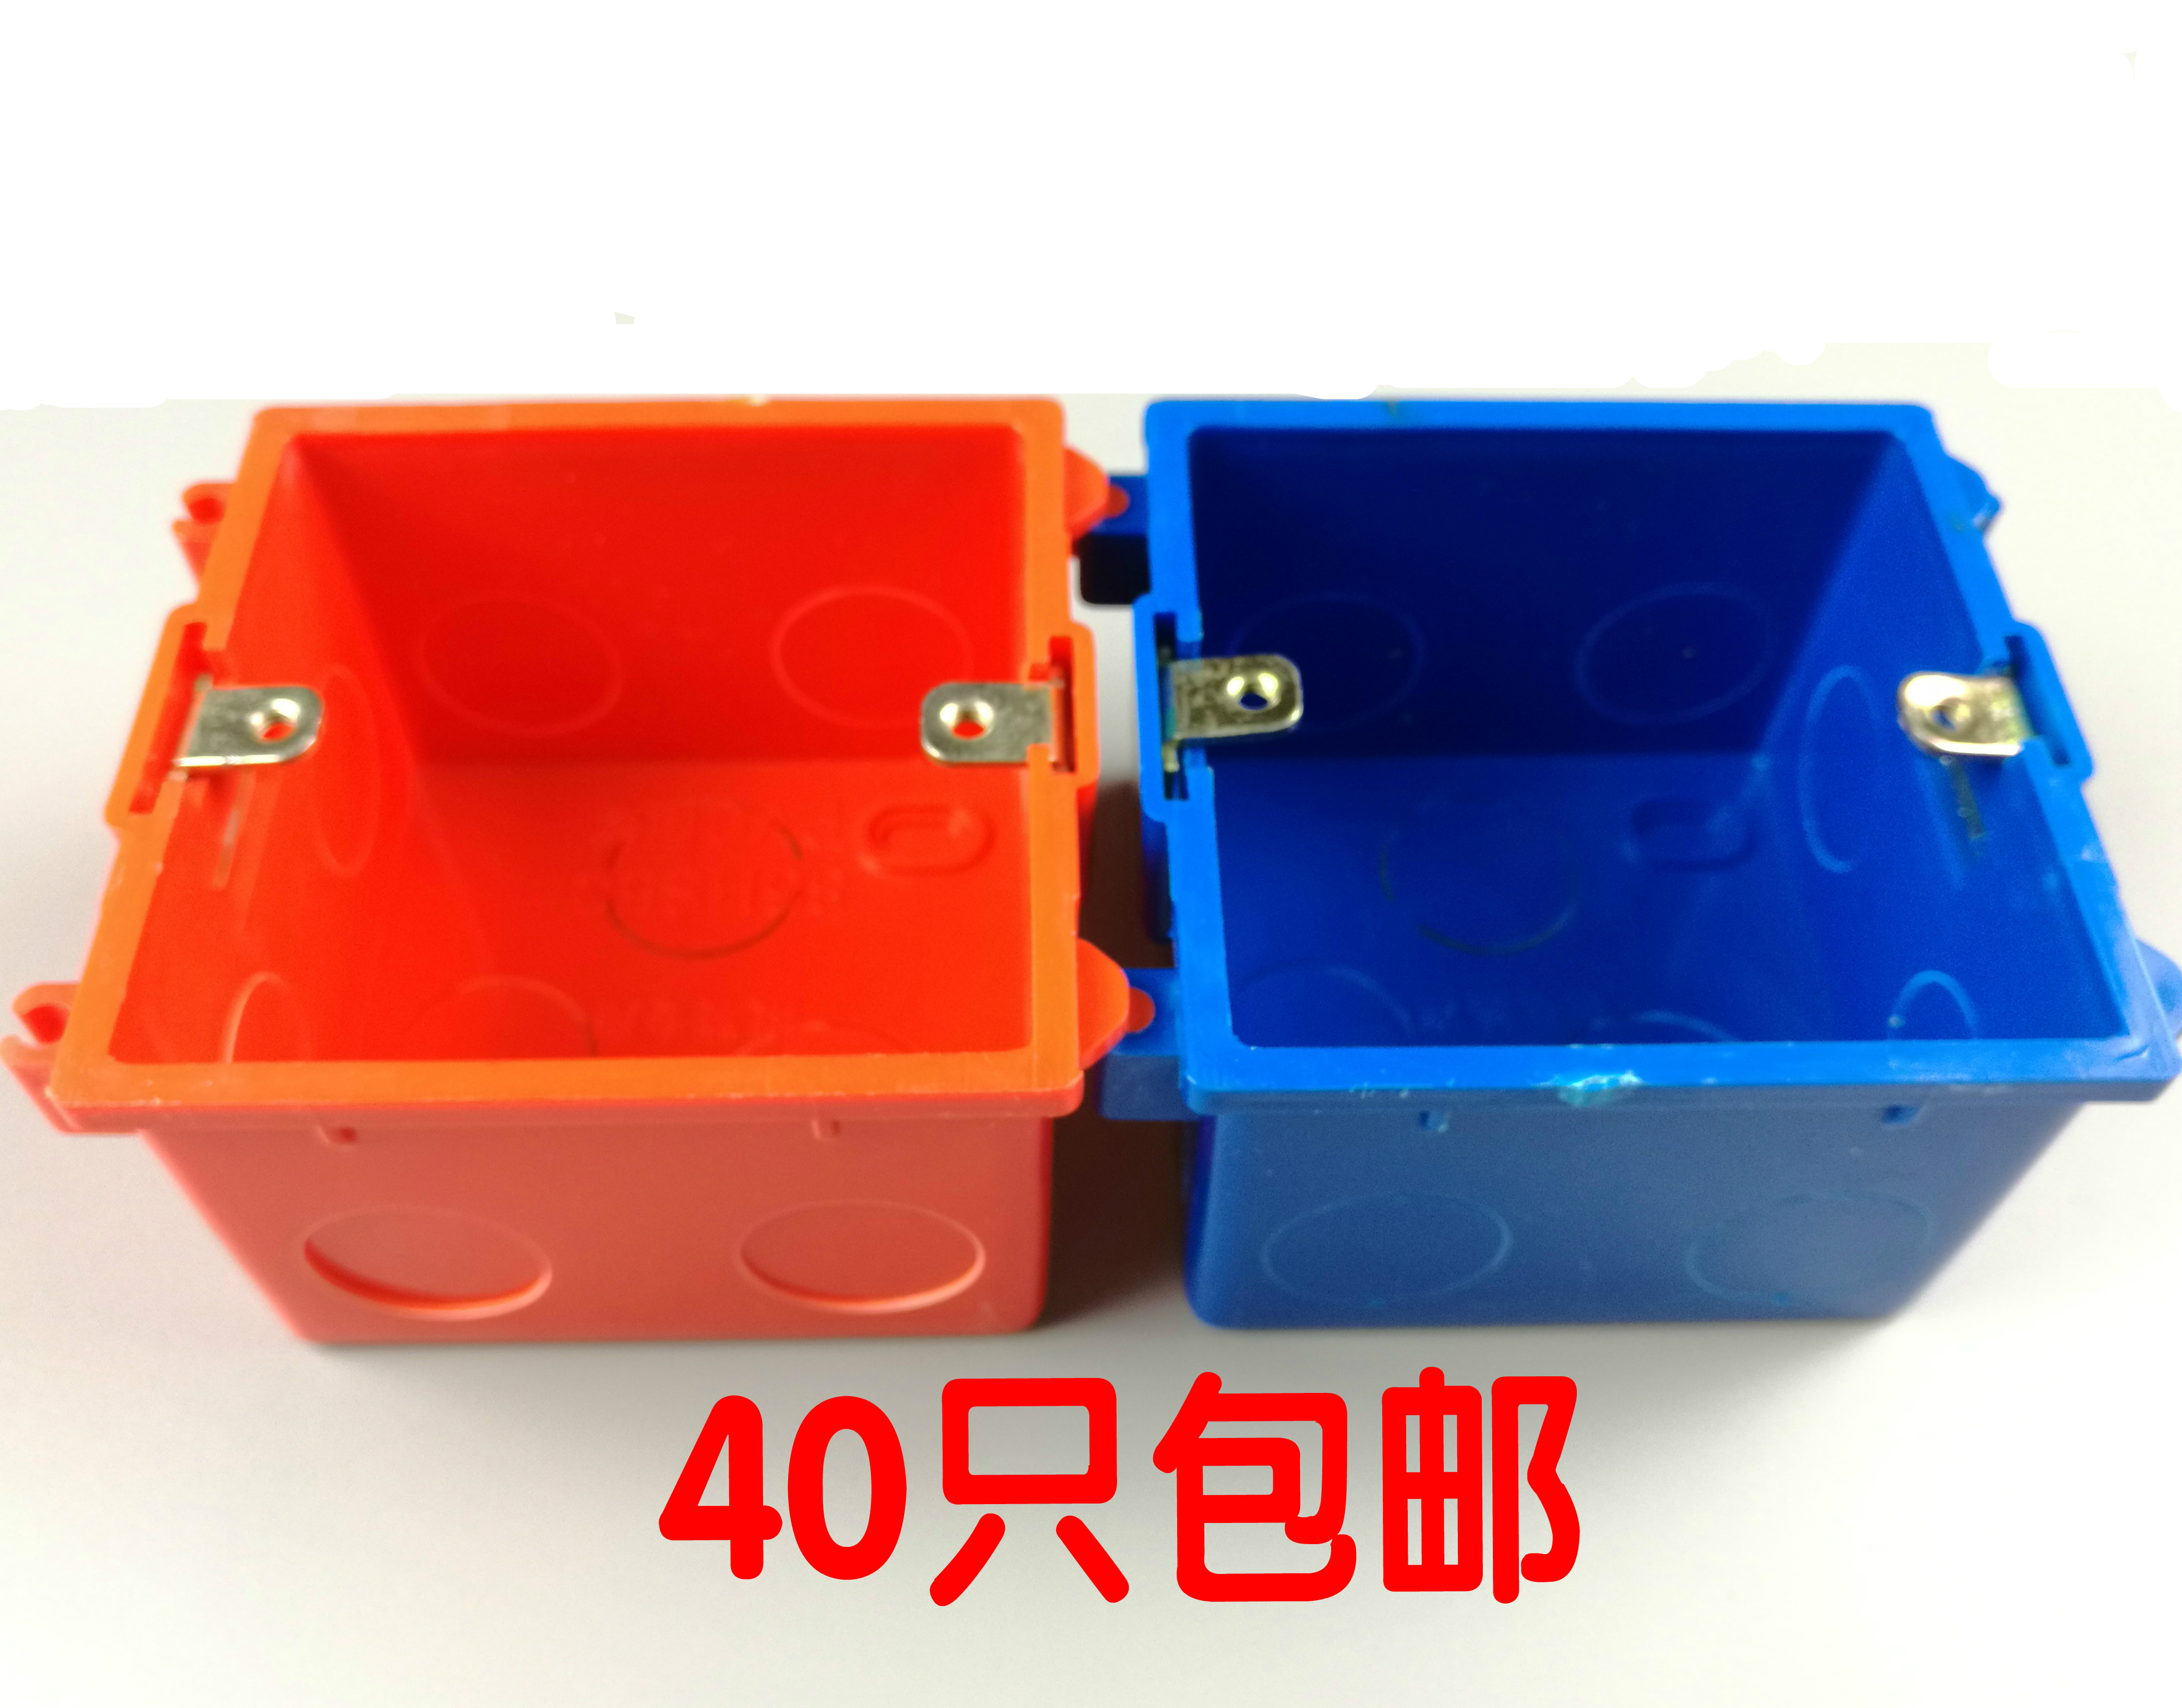 0 19] Red assembly boxes, color assembly boxes, 86 boxes